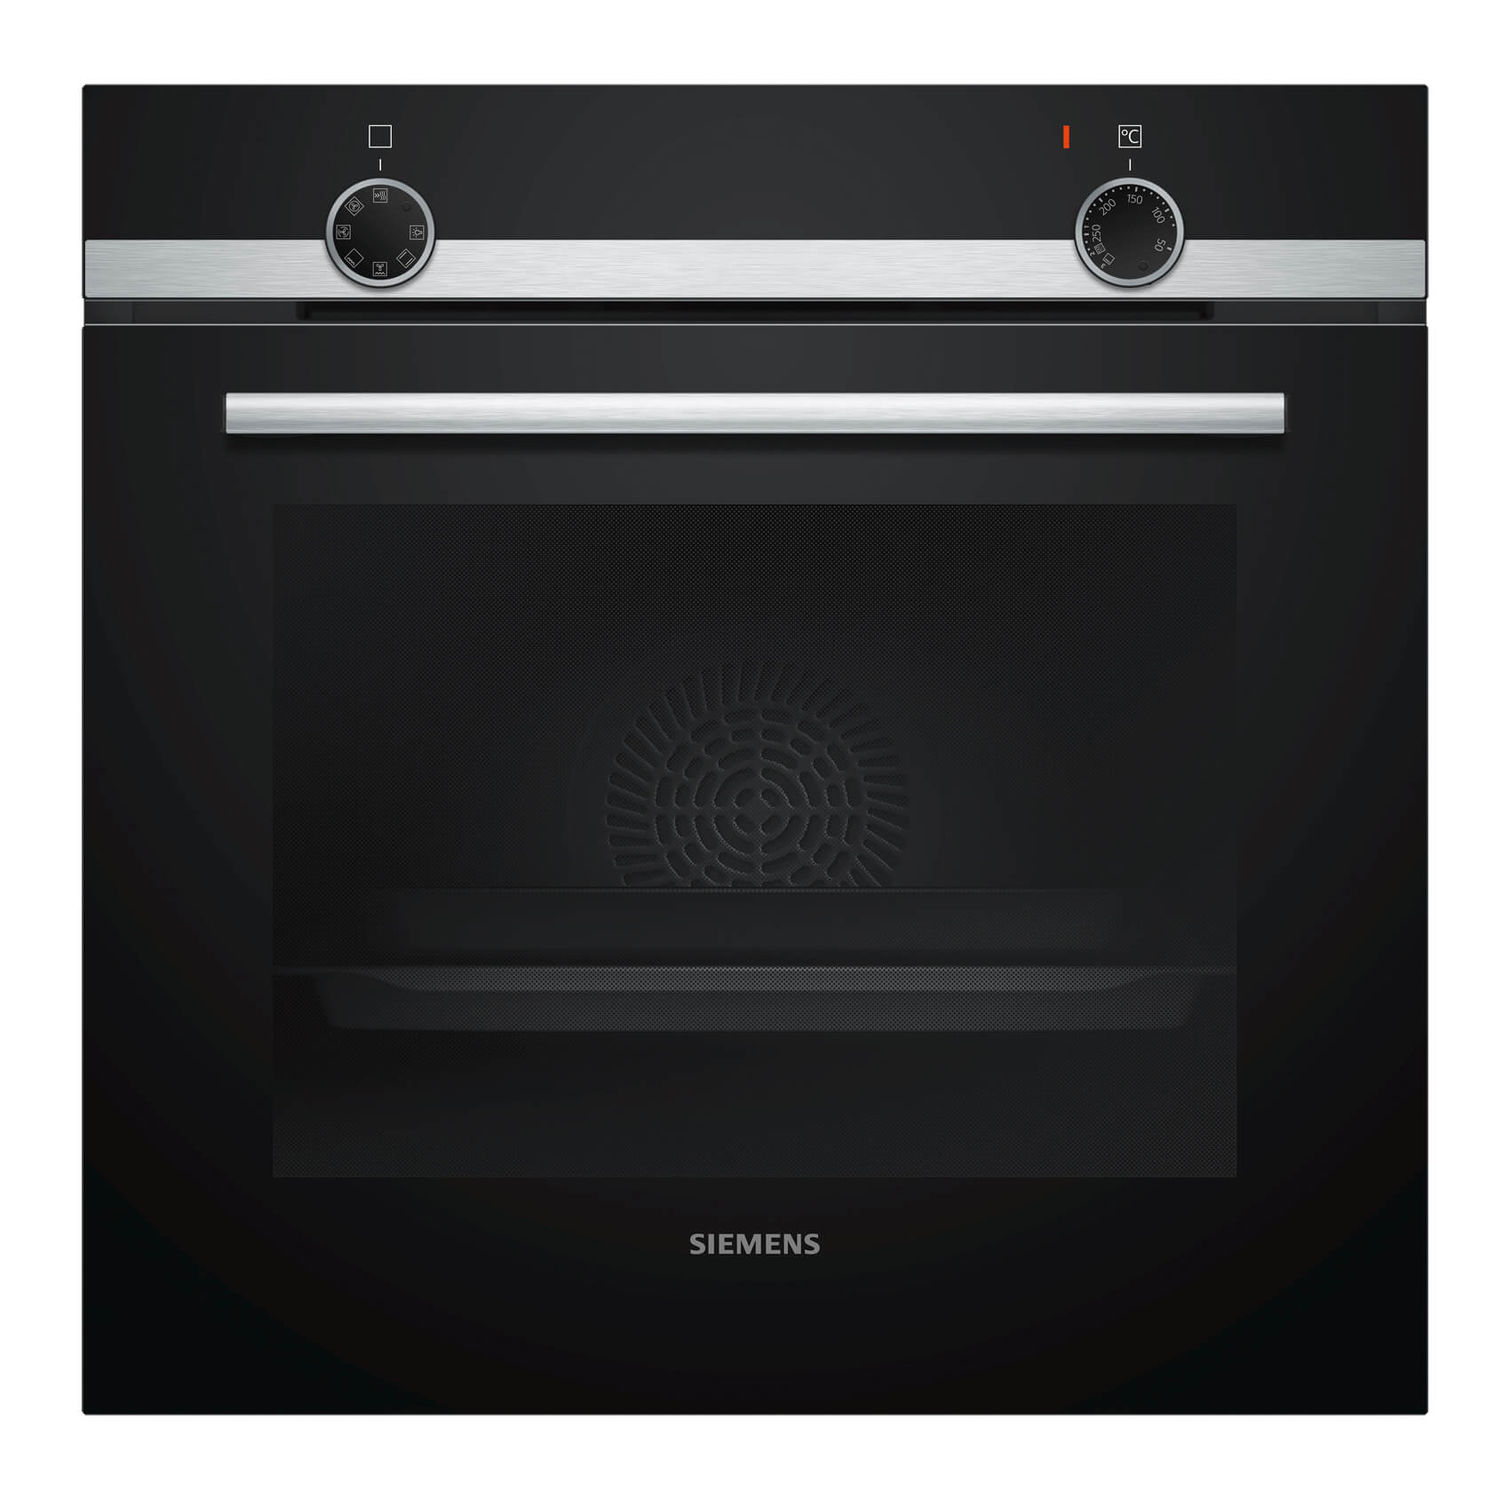 Siemens Hb510Abr0 Oven Stainless Steel